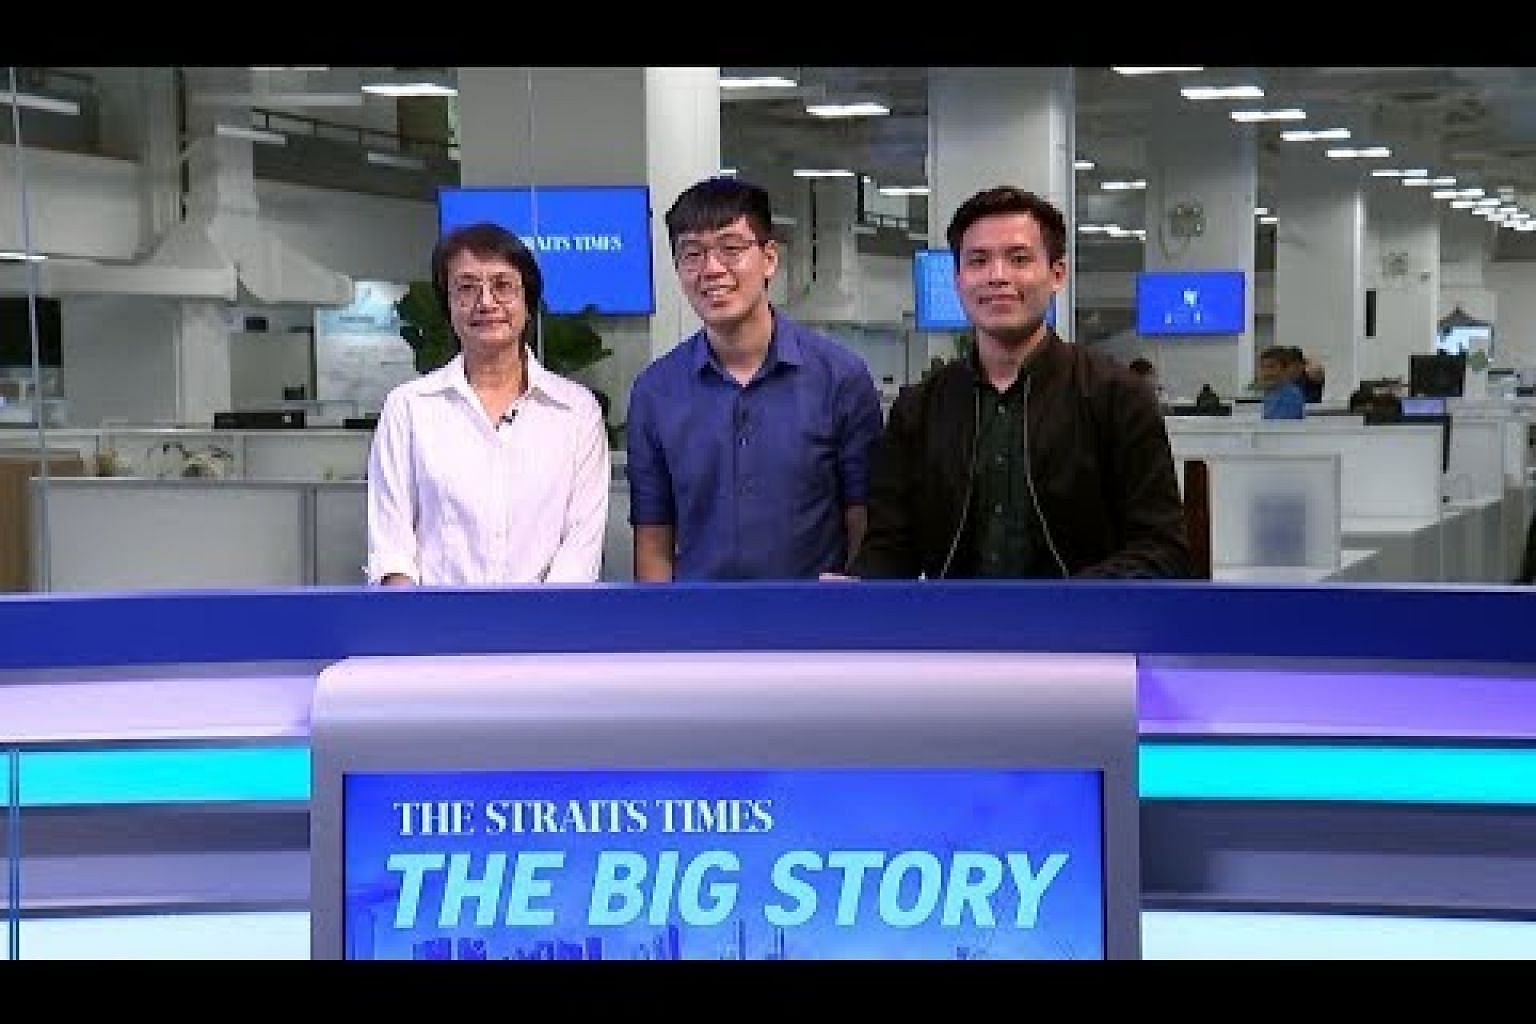 THE BIG STORY: Singapore bans ads for high sugar drinks |  Testing the Huawei Mate 30 pro